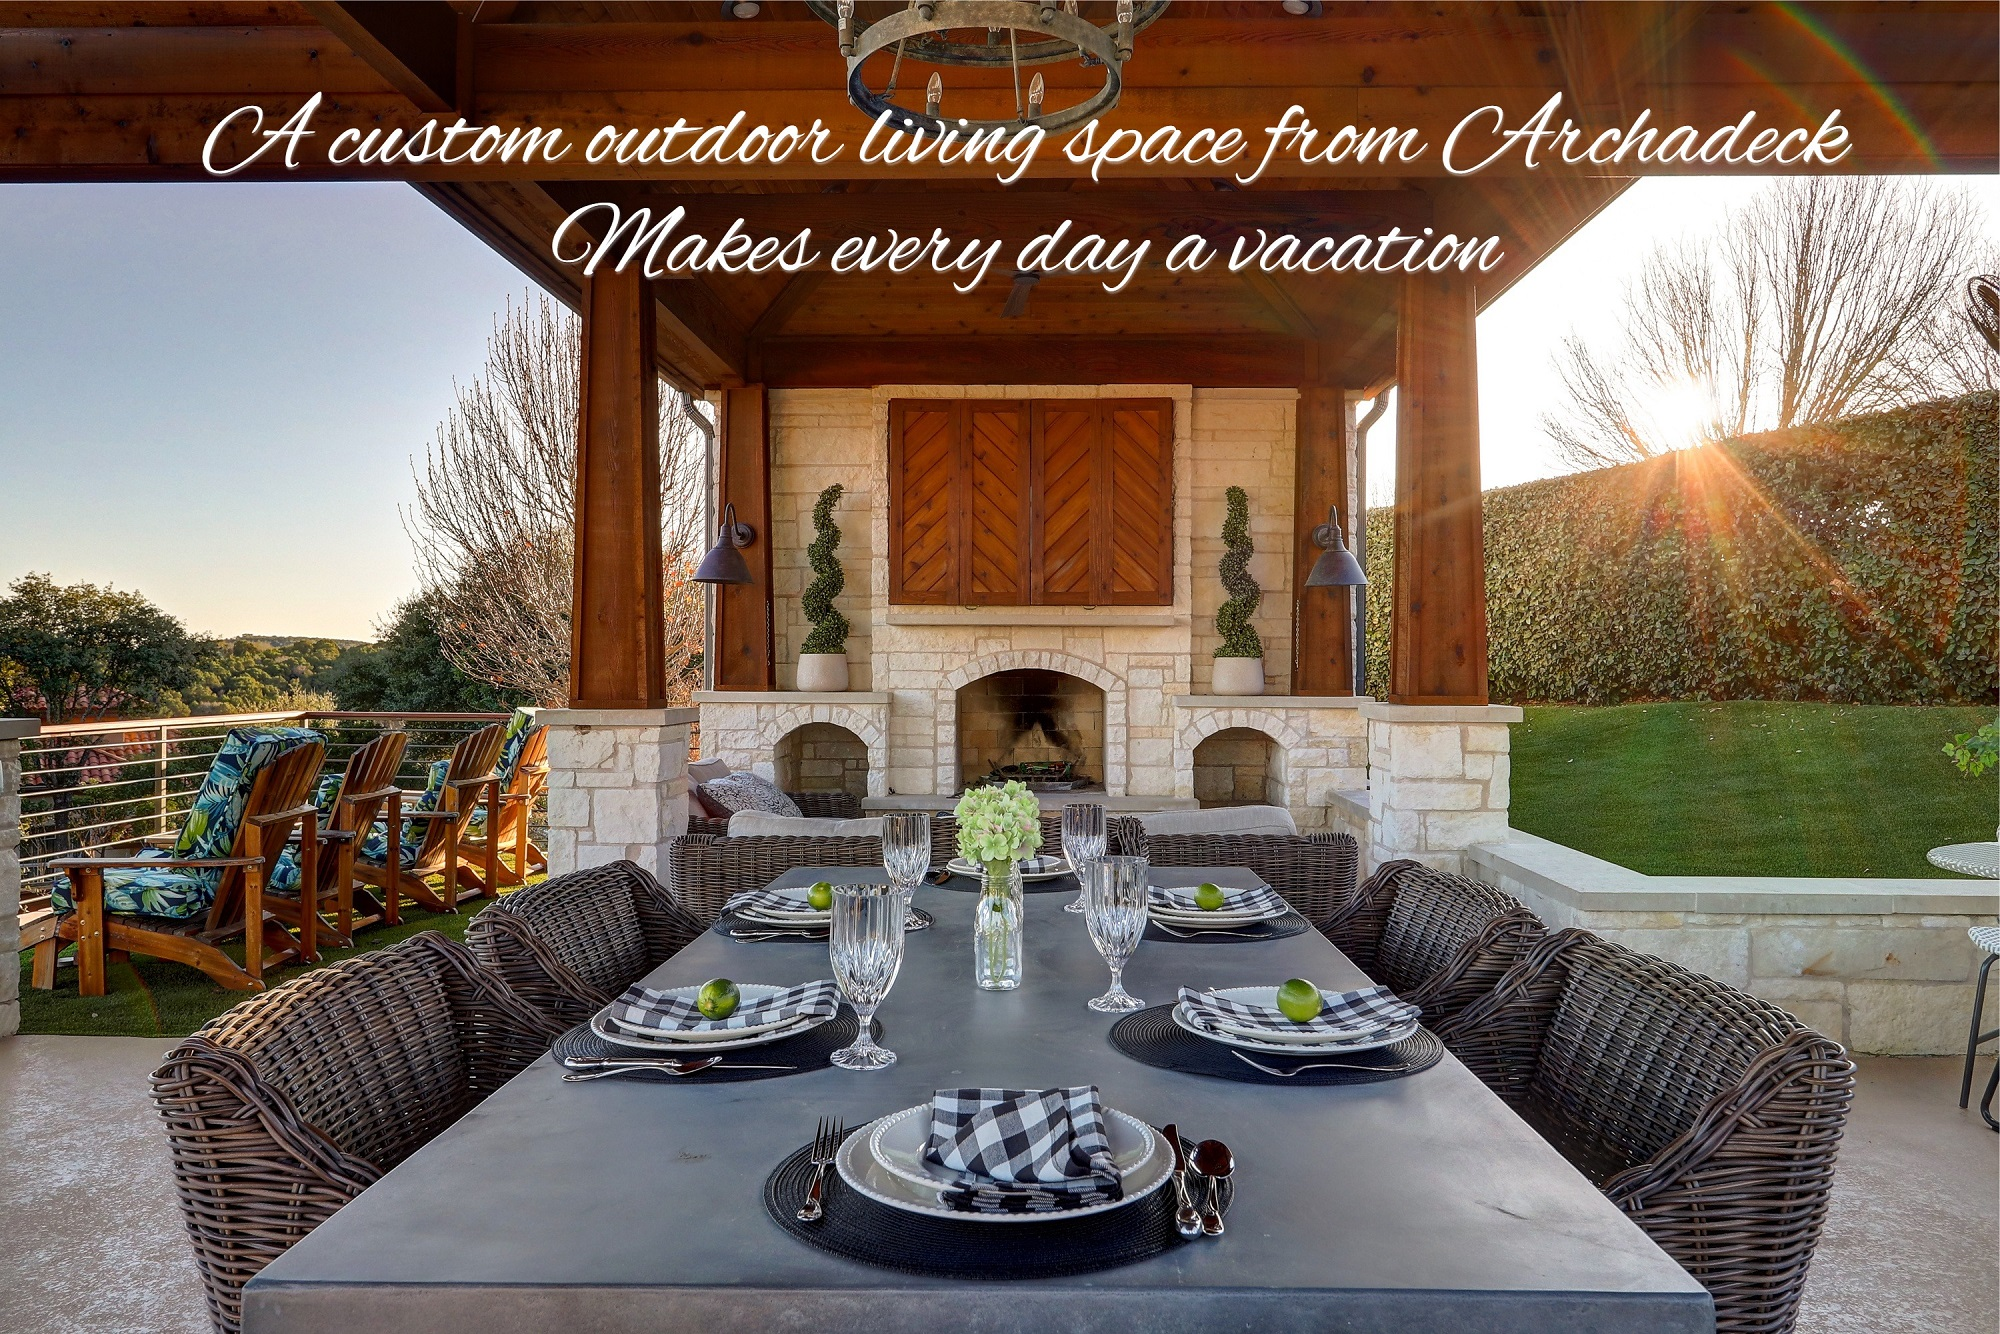 A-custom-outdoor-living-space-from-Archadeck-is-like-having-a-vacation-every-day-right-in-your-own-backyard